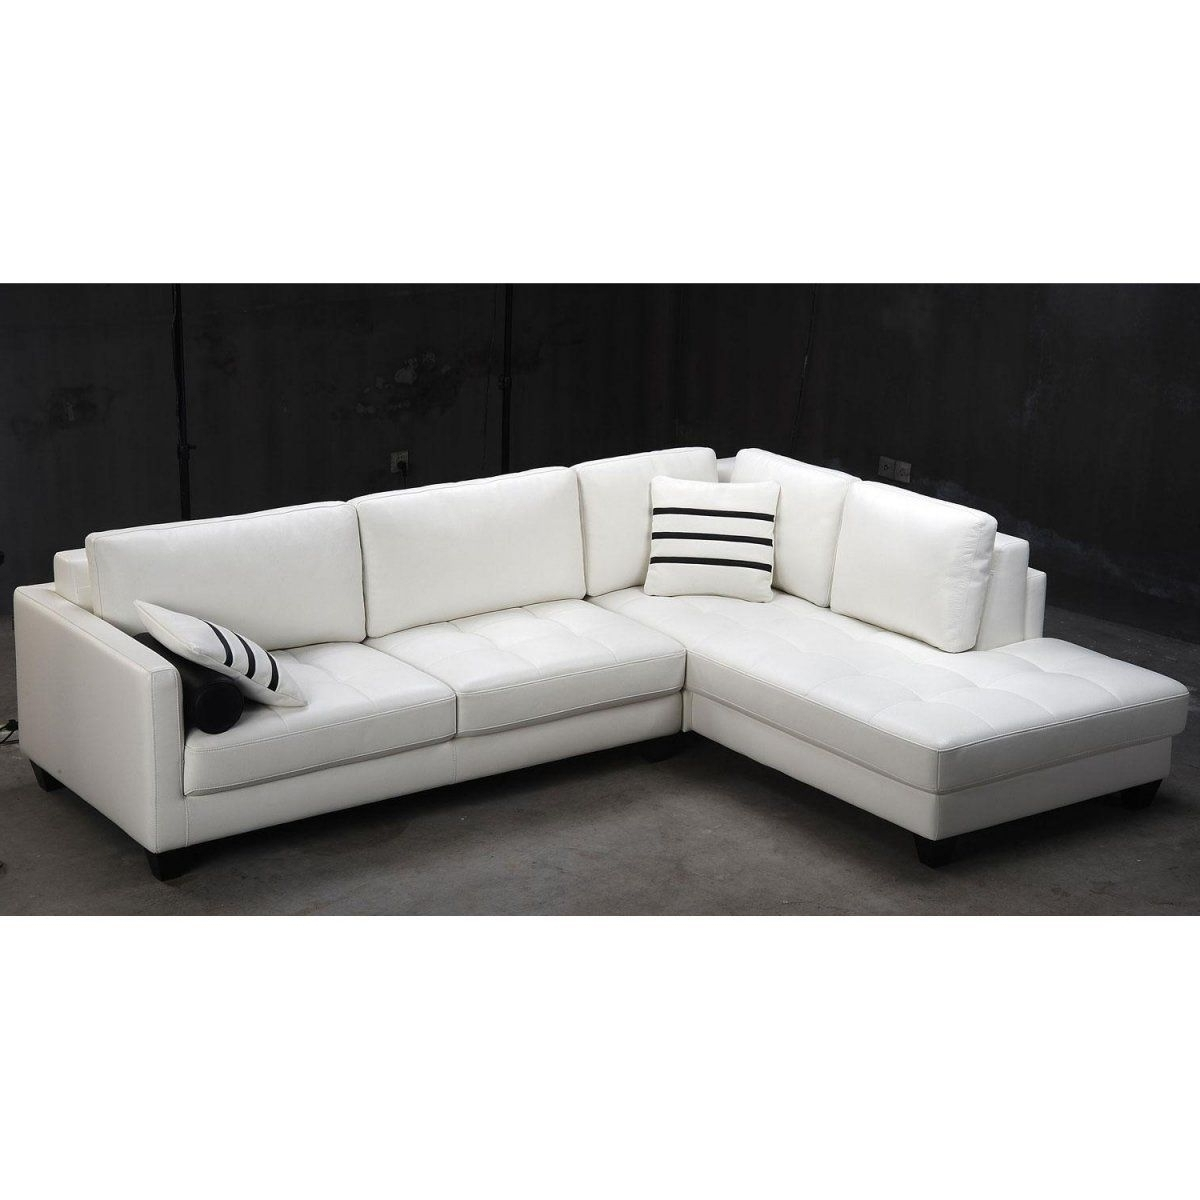 White Sectional Sofas In Famous Tosh Furniture Modern White Leather Sectional Sofa (View 14 of 15)